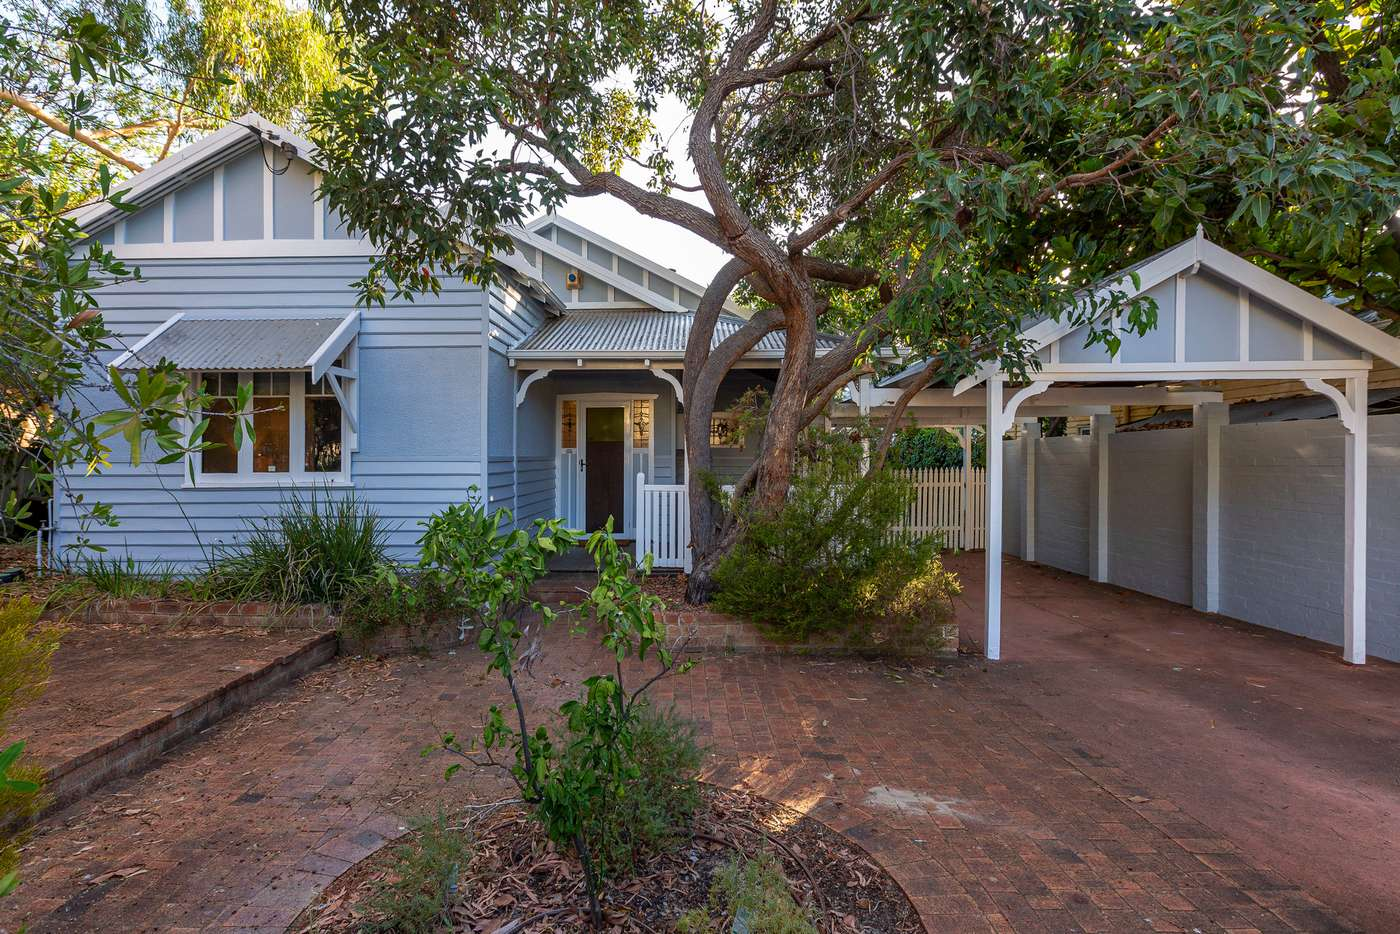 Main view of Homely house listing, 57 Dyson Street, Kensington WA 6151